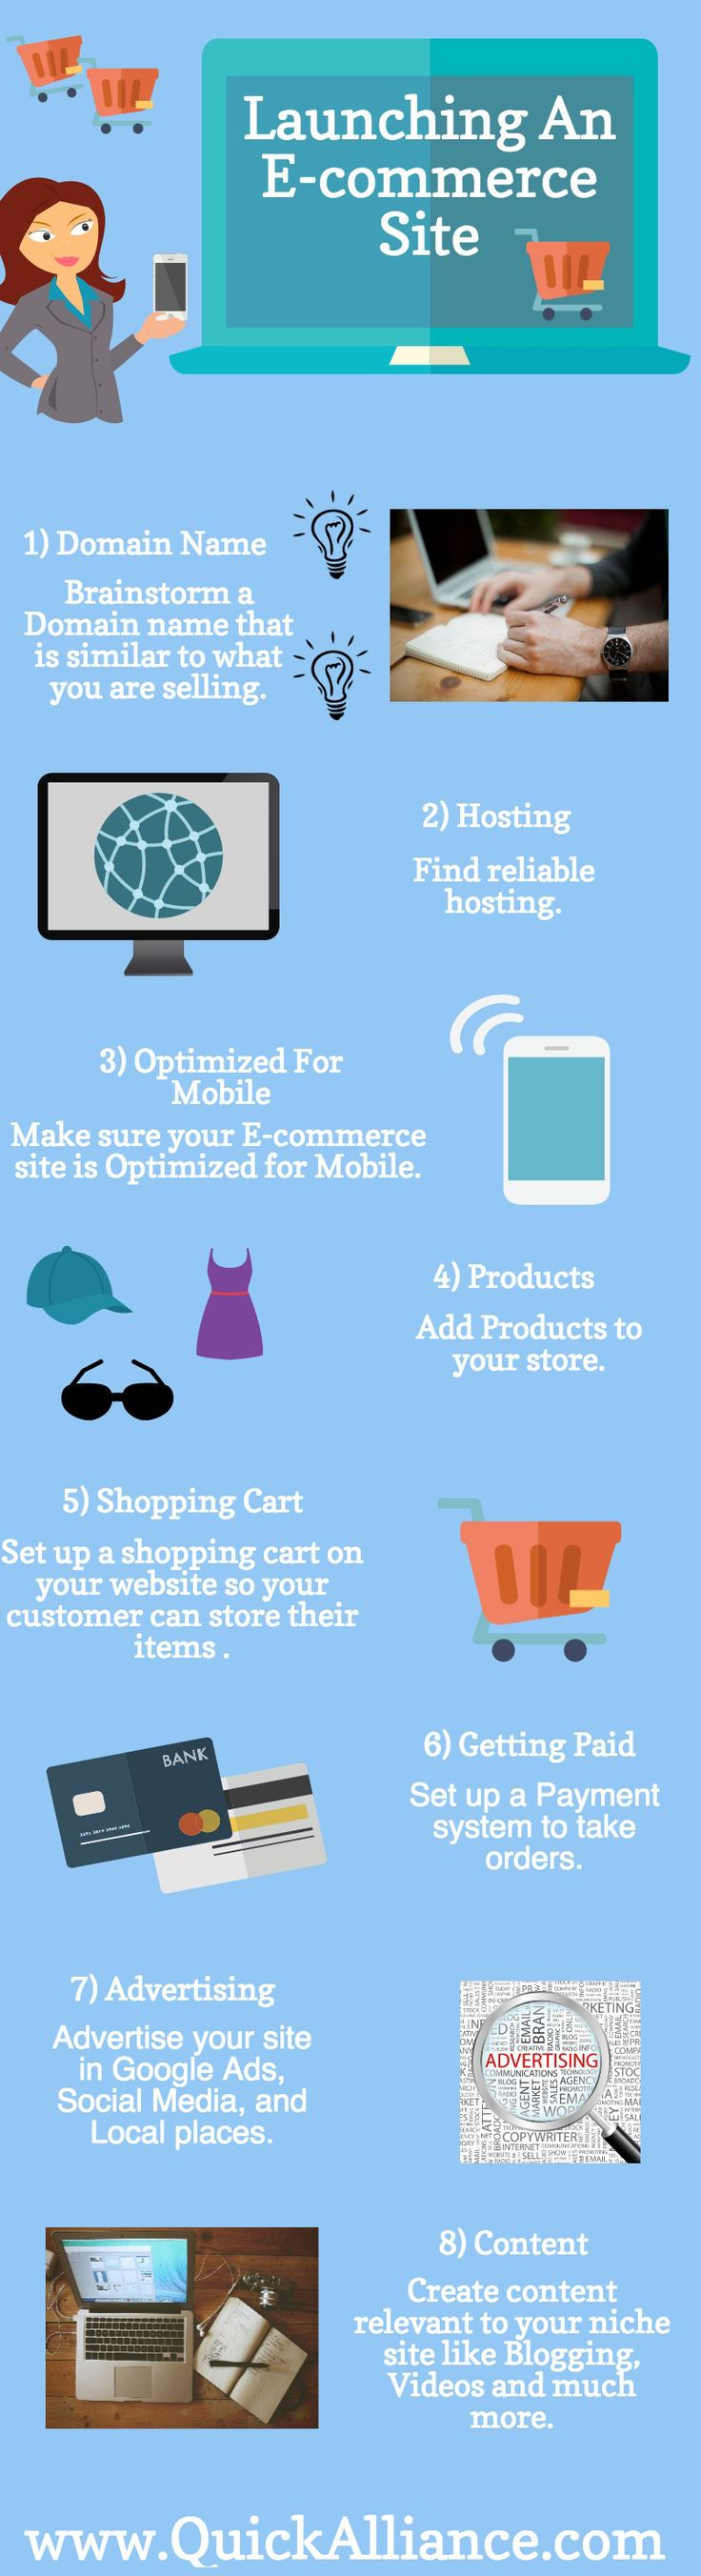 Launching An E-commerce Site - #INFOGRAPHIC http://www.quickalliance.com/launching-e-commerce-site/